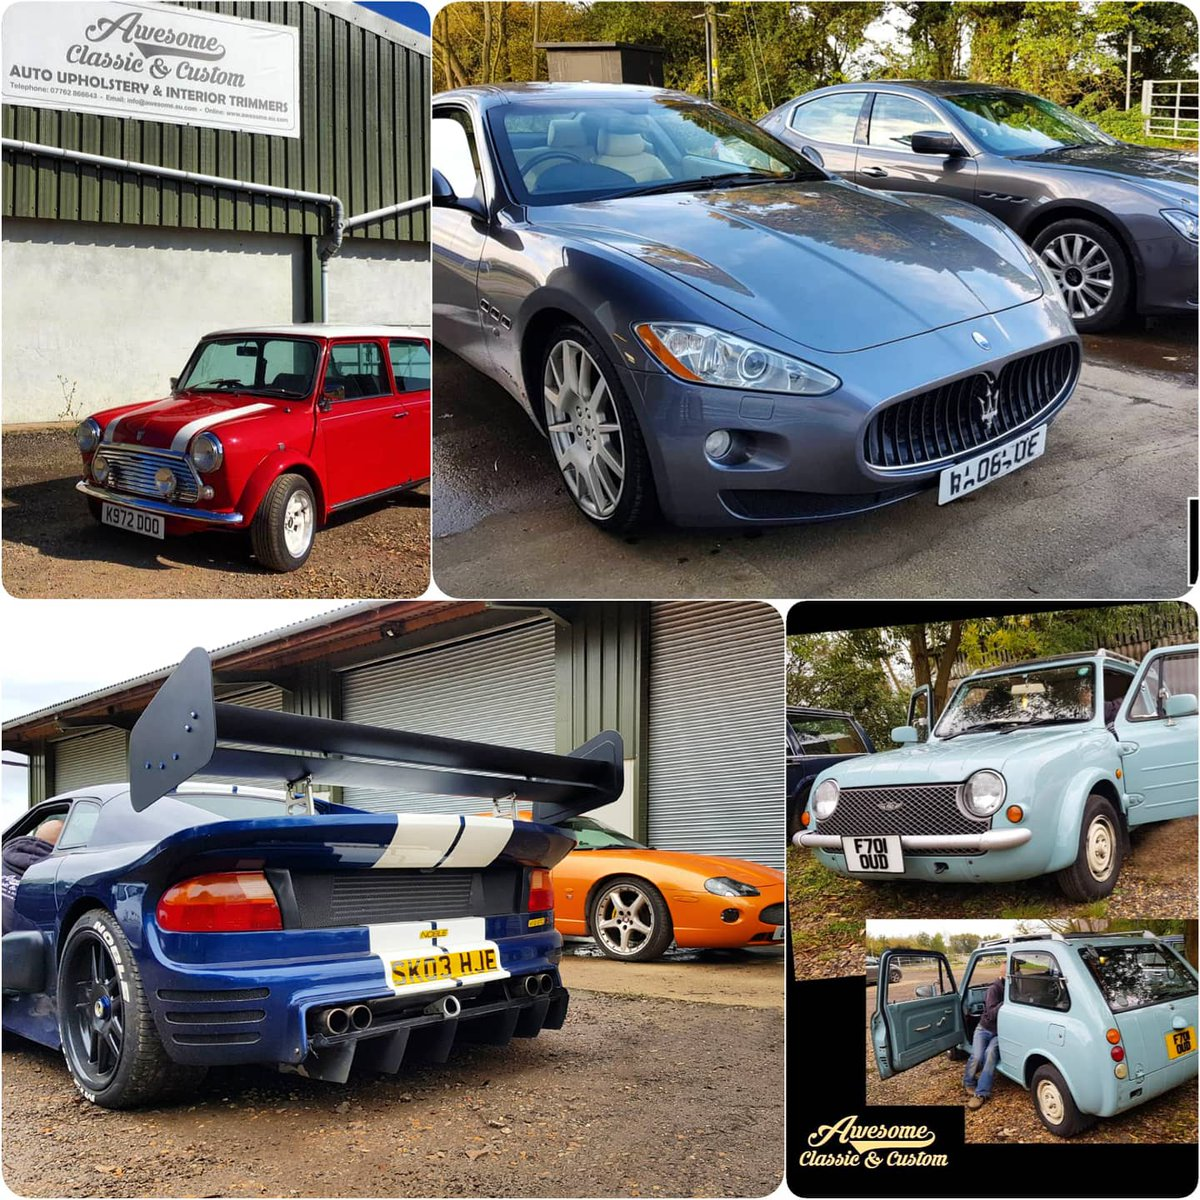 Highlights from a super busy week here at the Awesome HQ. Have a great weekend everyone. #minifans #mini #classicmini #maseratifans #Maserati #nobelcars #supercars #nissanpao #awesome #weekendvibes #cars #carinteriors #Automotive #cartrimmers #autoupholstery https://t.co/Za1H4pUvOv